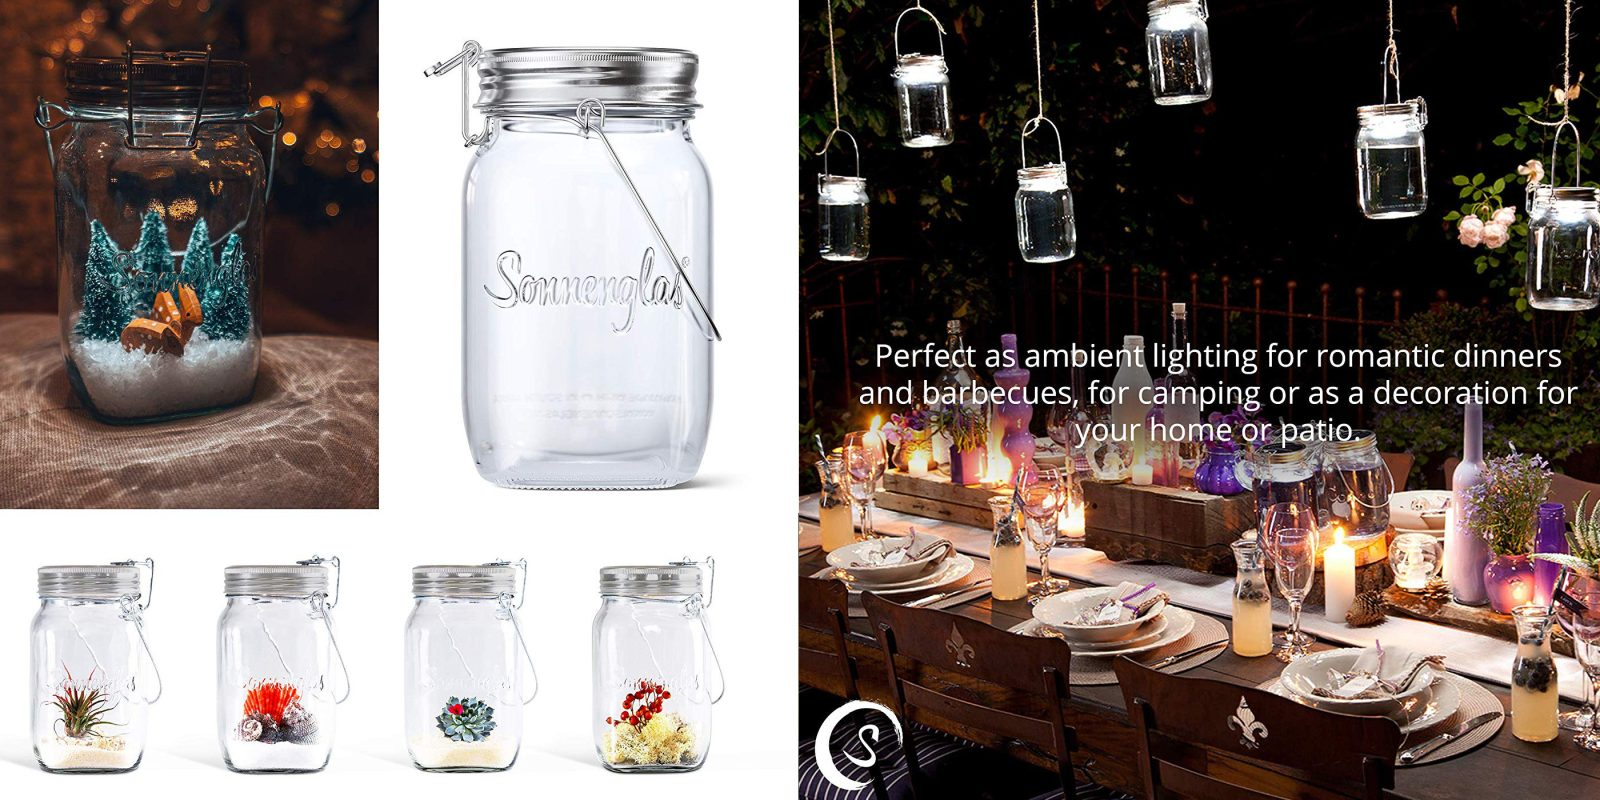 Take Your Holiday Decor Next Level With Sonnenglas Solar Jar